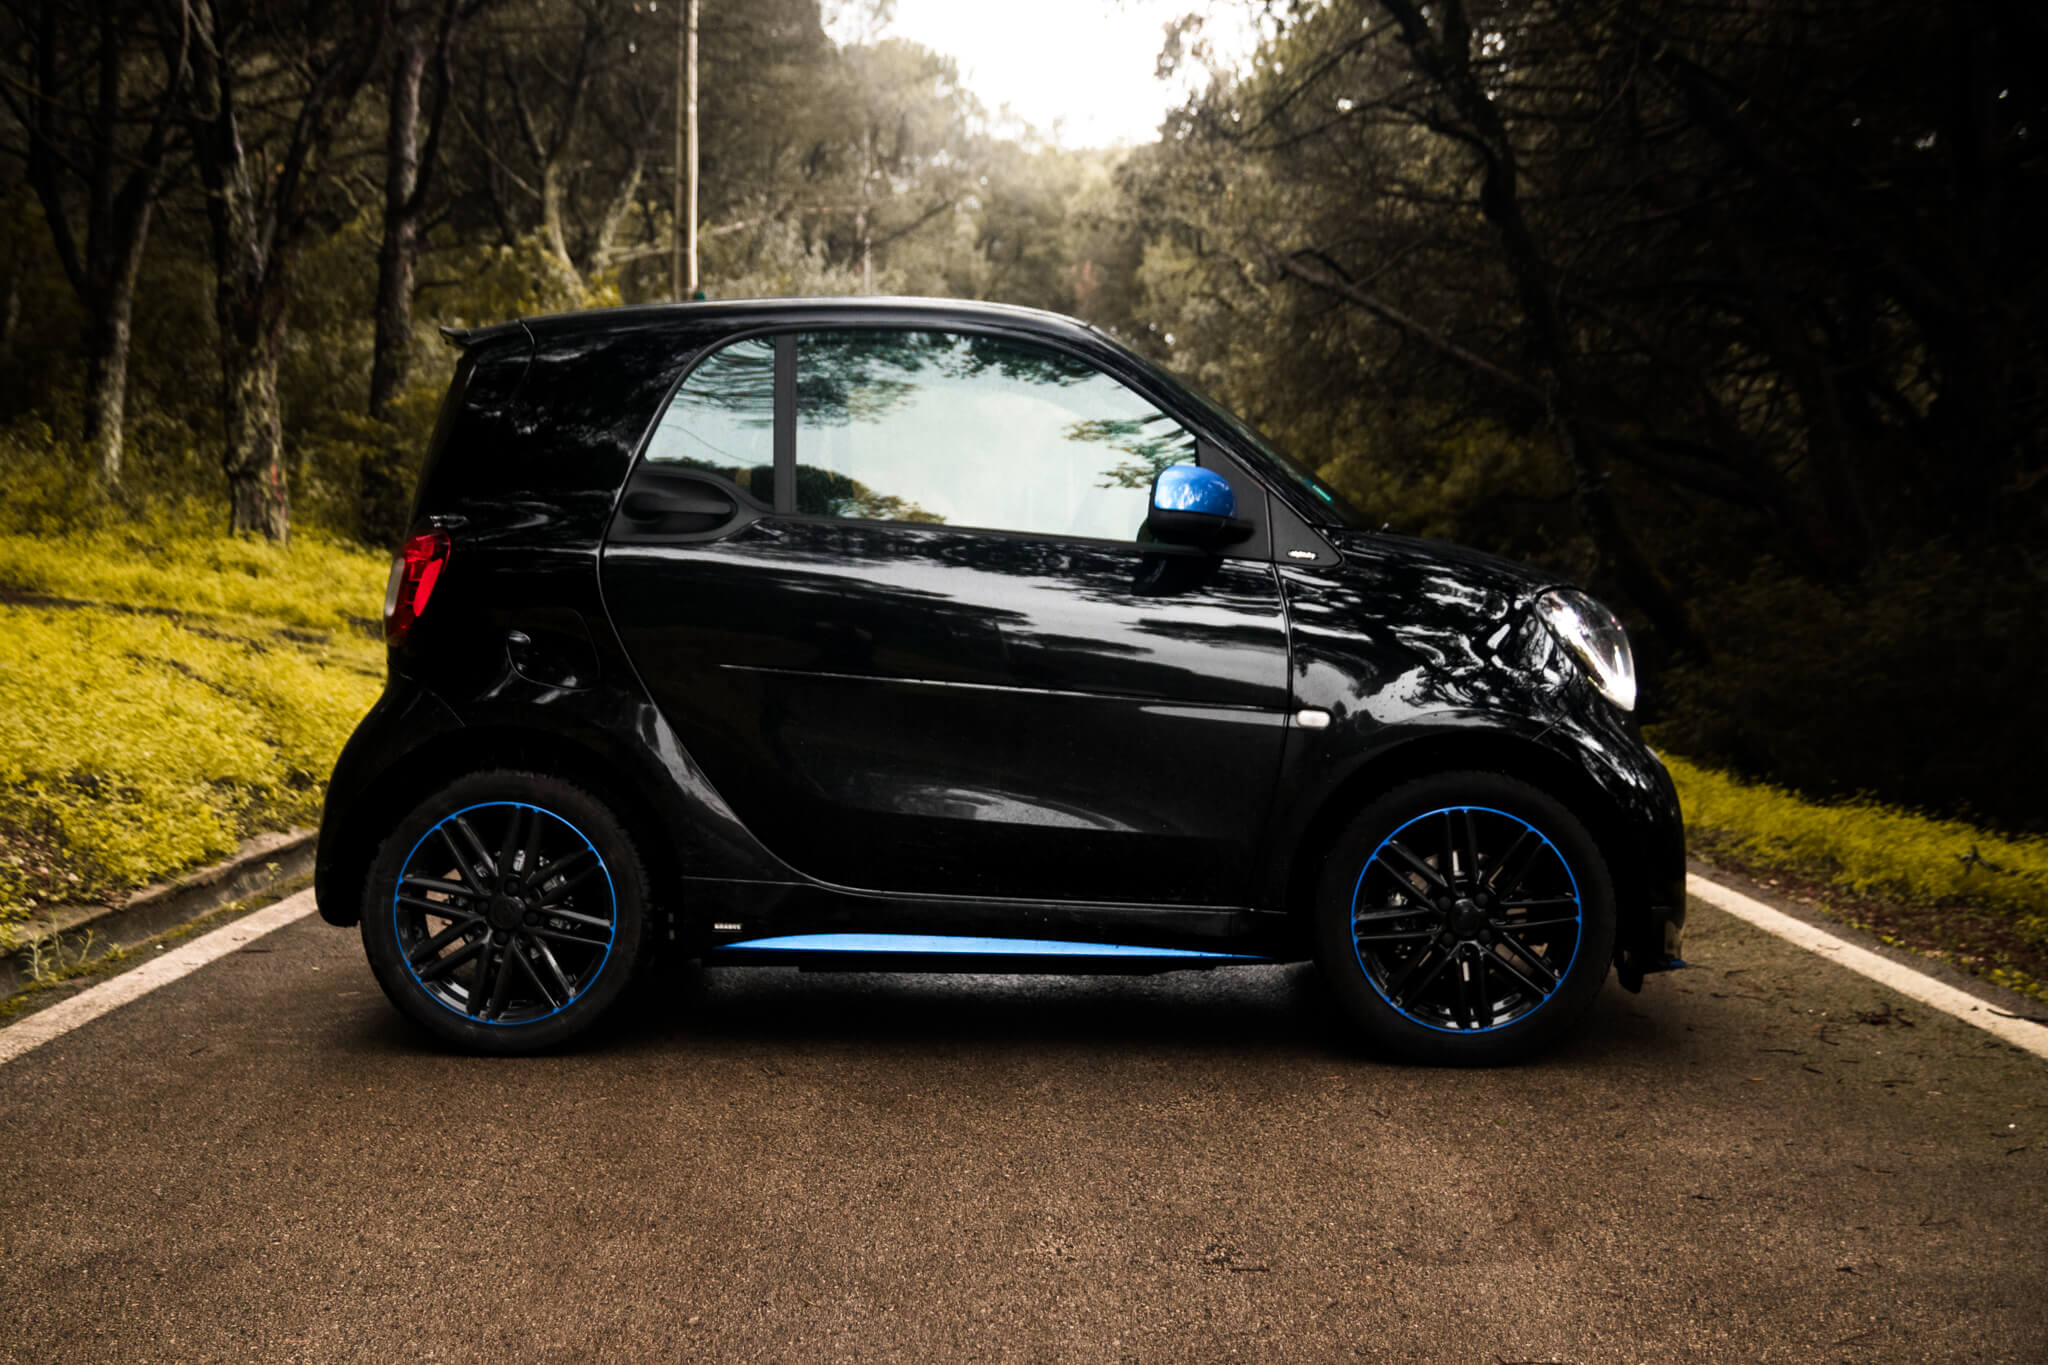 Smart EQ fortwo nightsky edition